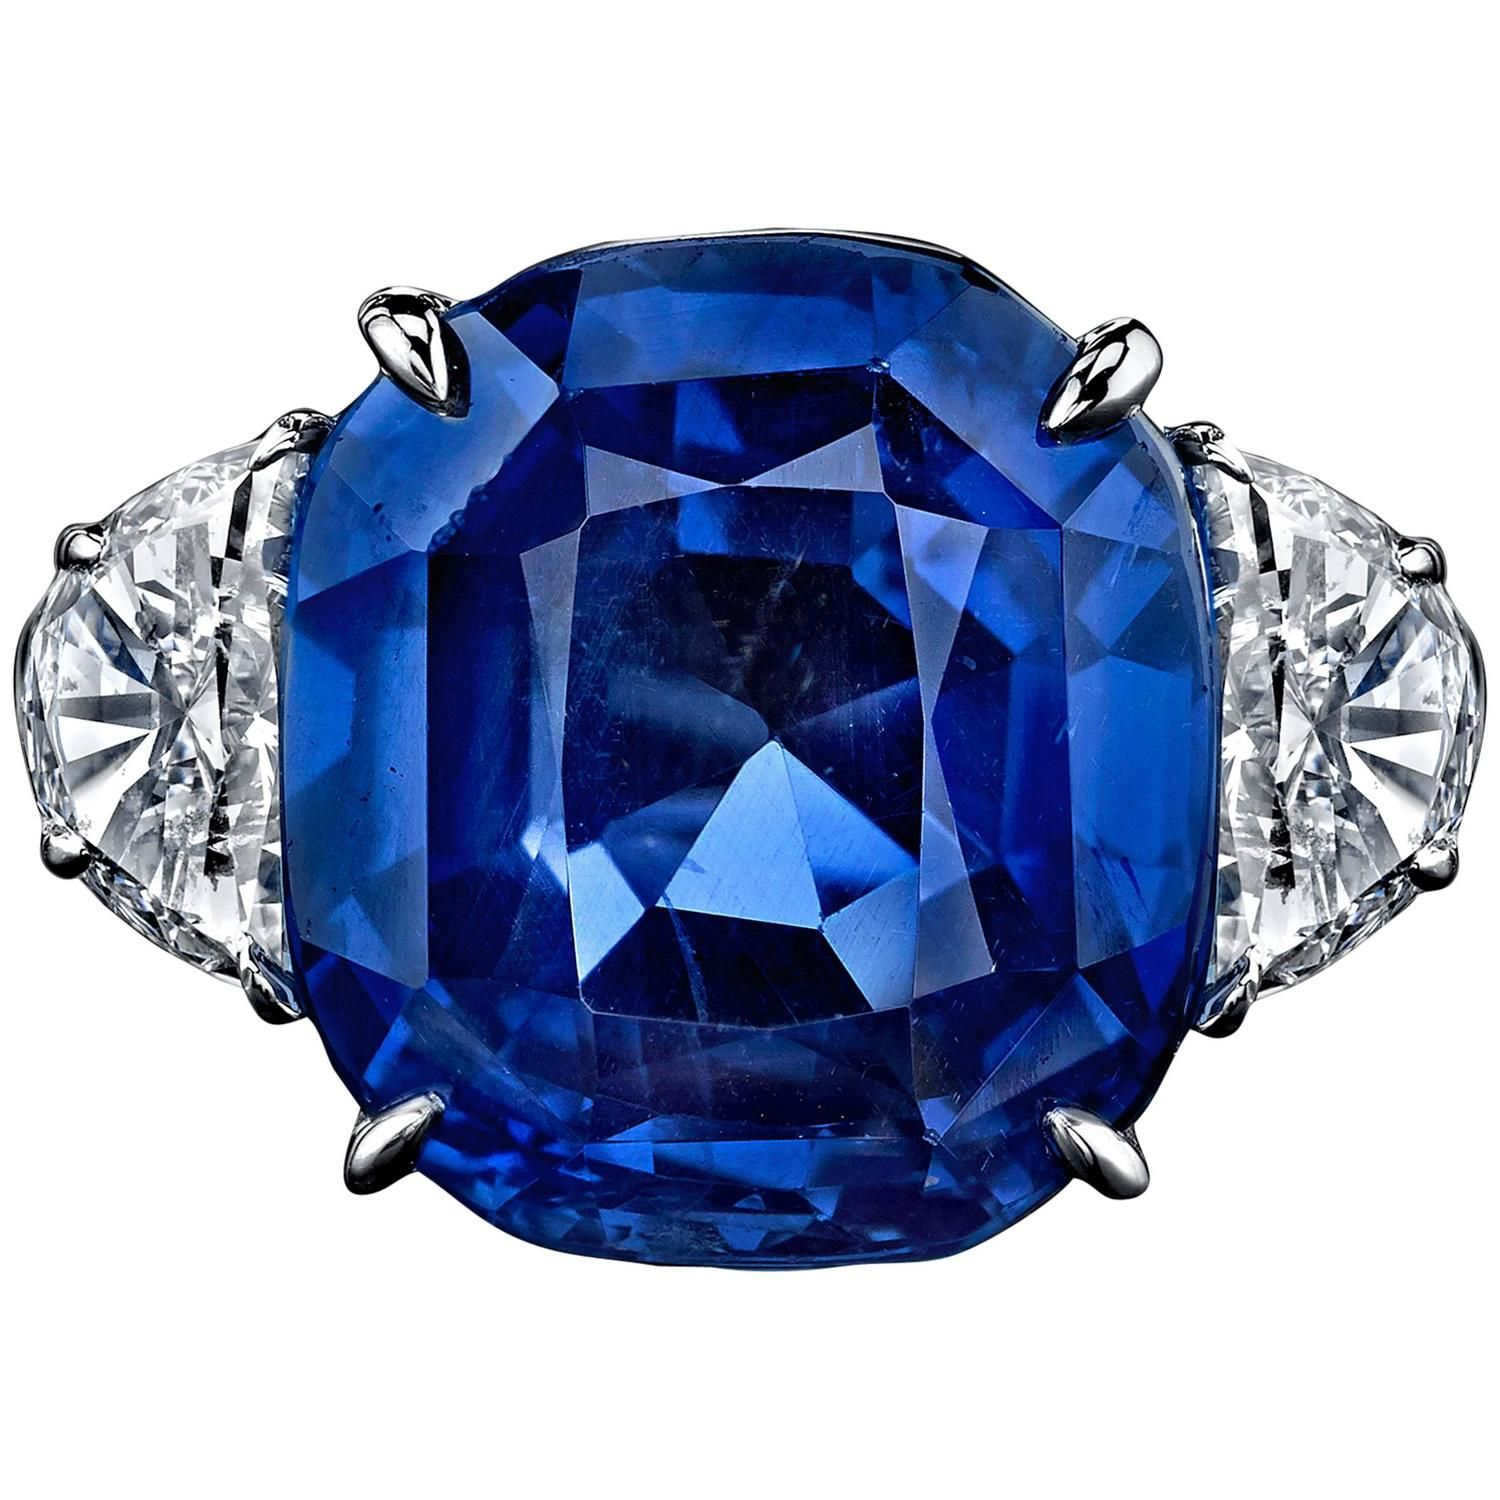 hardest hardness sapphires s world birthstone in the septembers with september one marks its accompanied moh on beautiful scale are measuring of percy sapphire a is diamond this gemstones